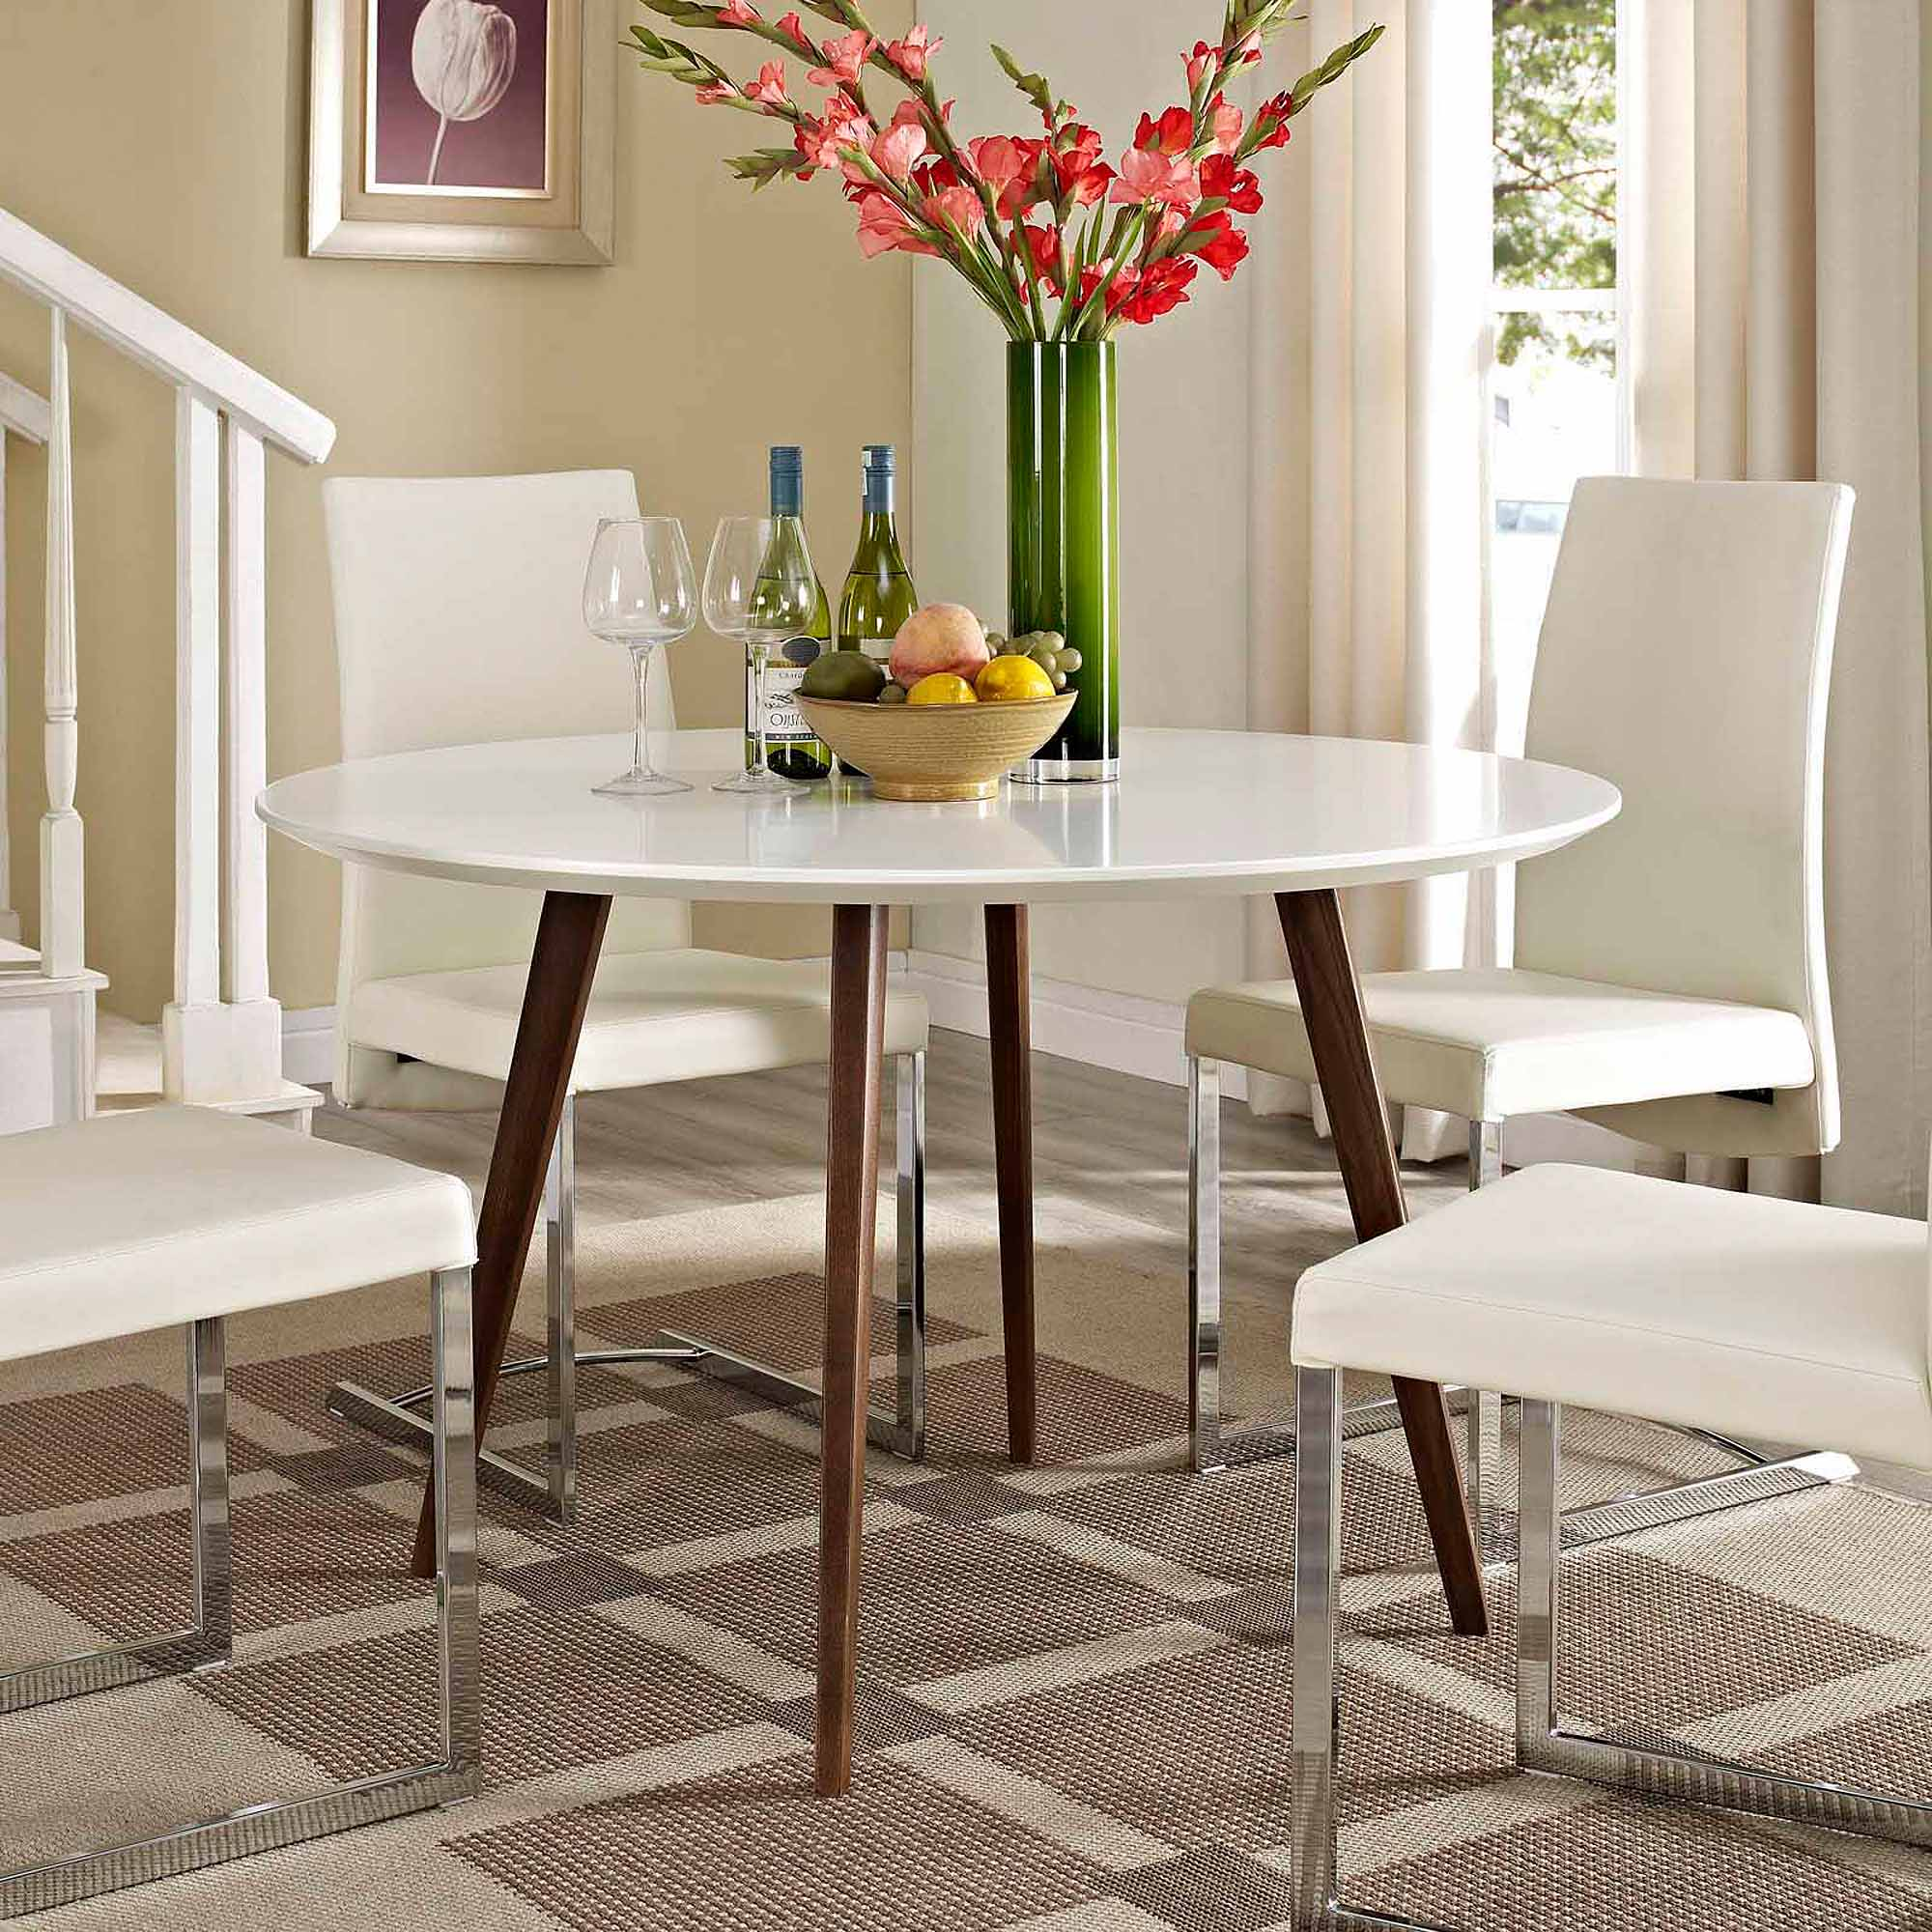 Modway Canvas Round Dining Table with Wood Legs in White